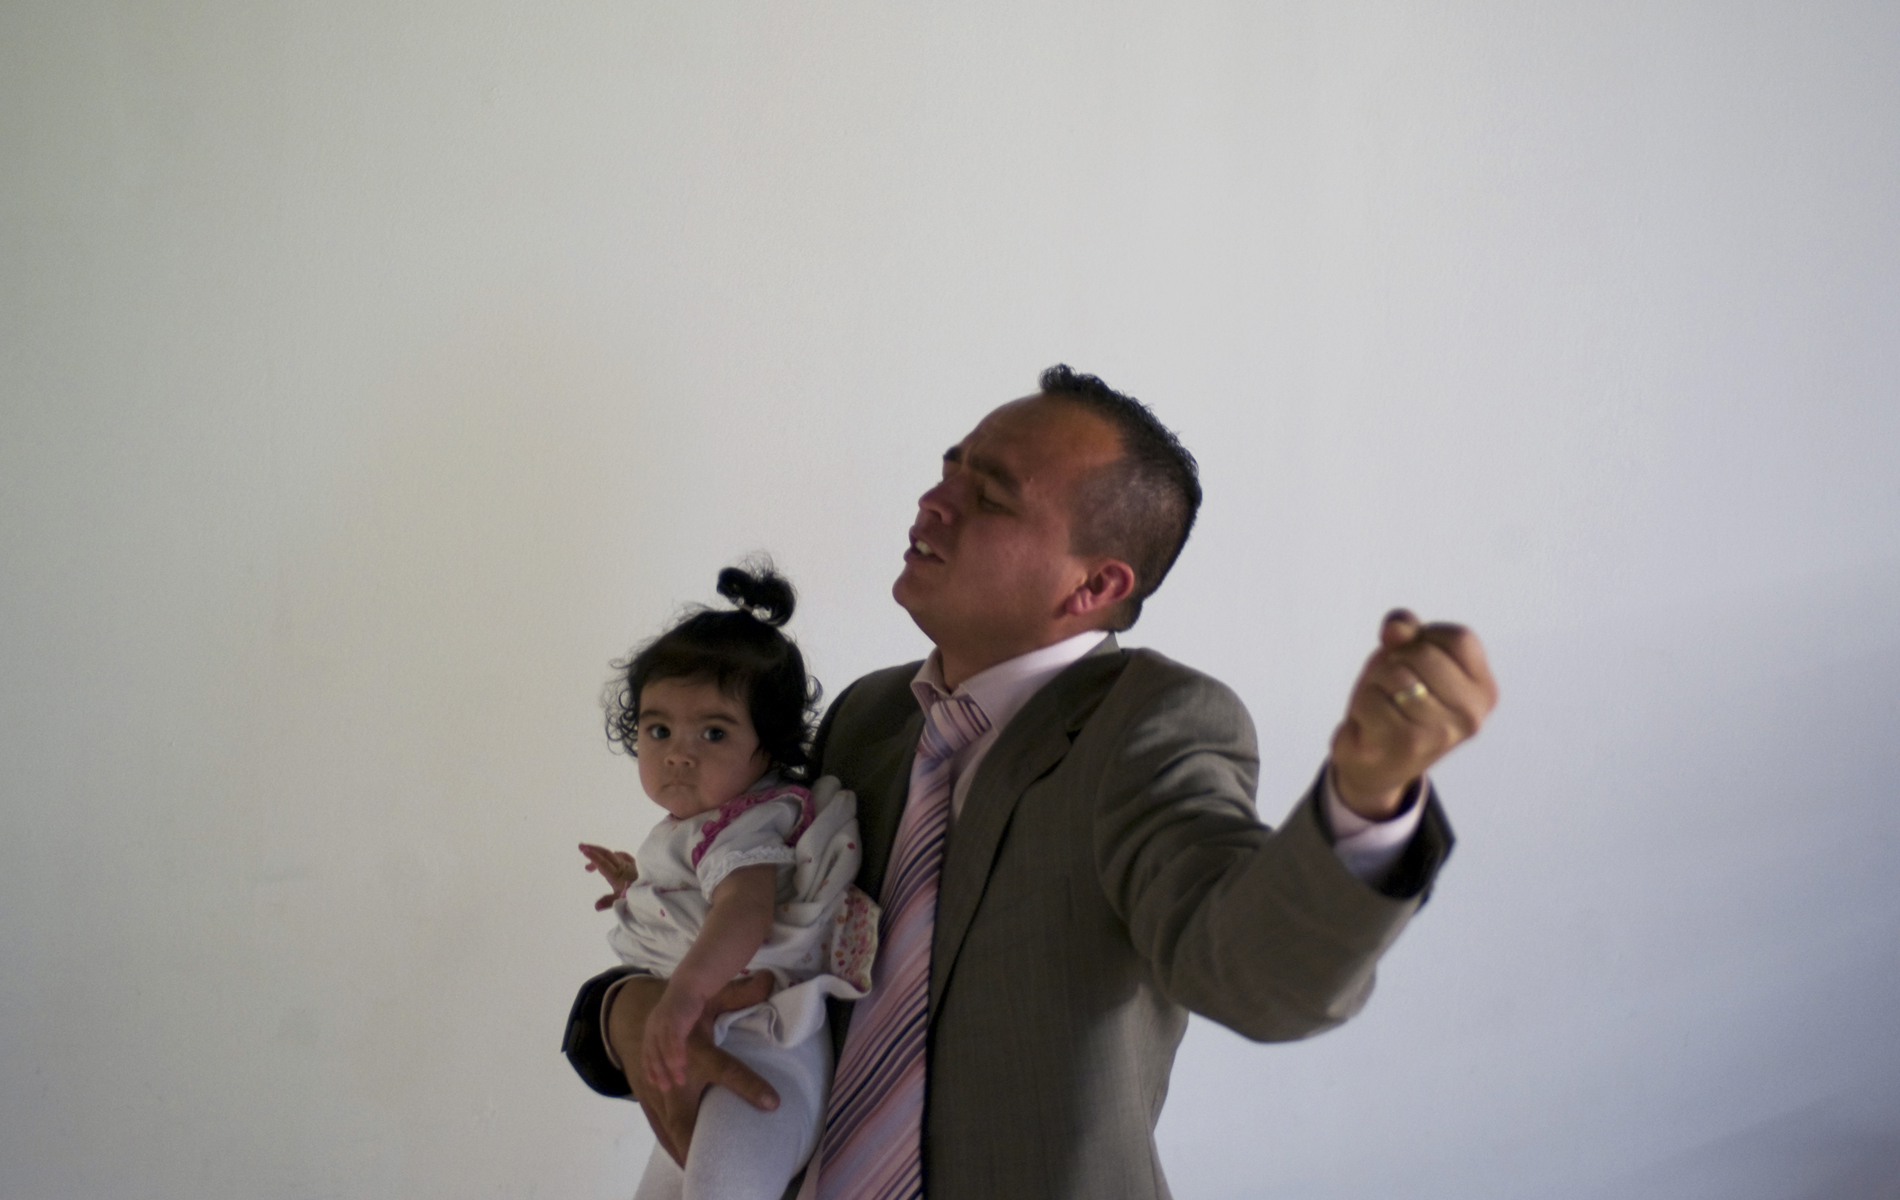 A father prays while holding his daughter during a Pentecostal service in Tarragona, Spain. © Damaso Reyes